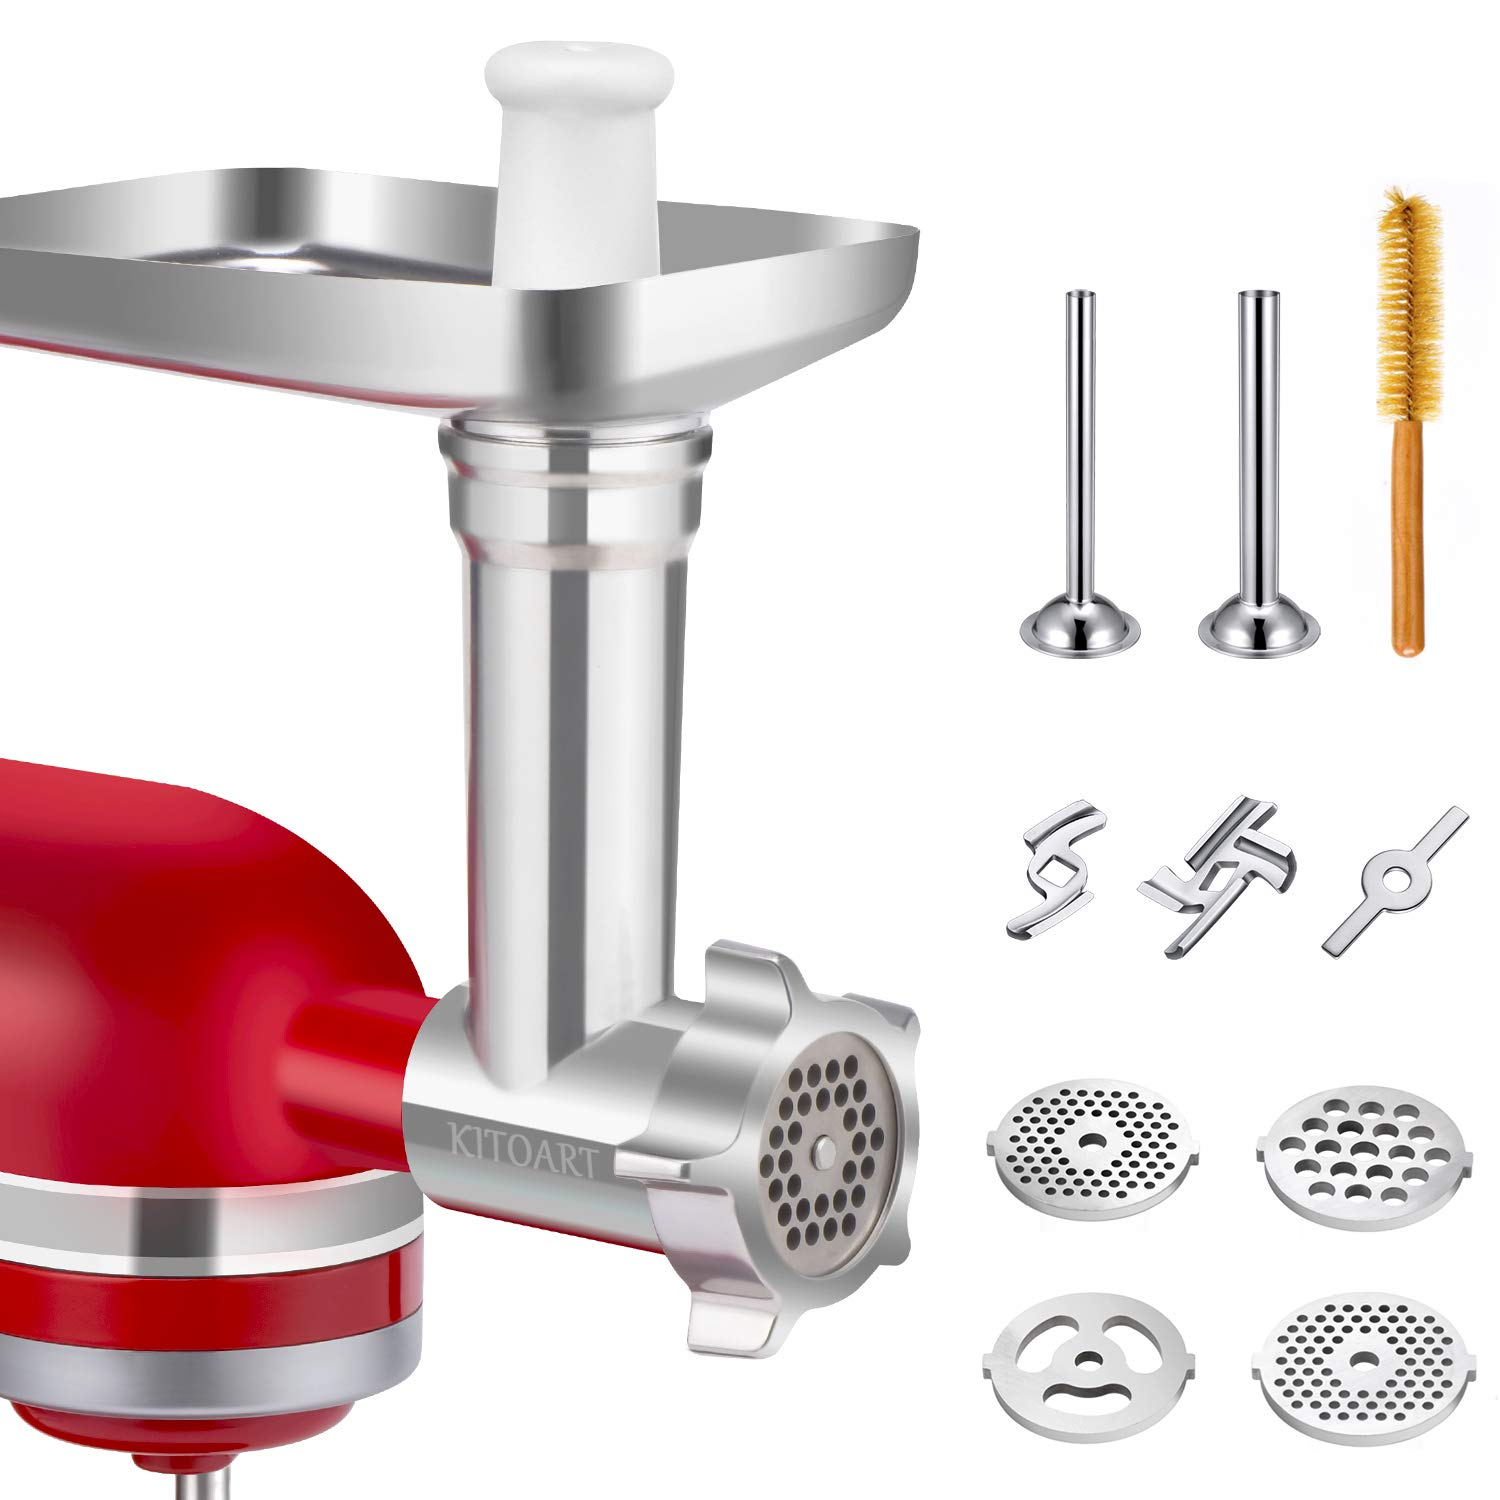 Metal Food Meat Grinder Attachments for KitchenAid Stand Mixers, KITOART Meat Grinder Attachment Compatible with KitchenAid Stand Mixers, including Sausage Stuffing Accessory, Cleaning Brush [ Newly Designed ] by KITOART